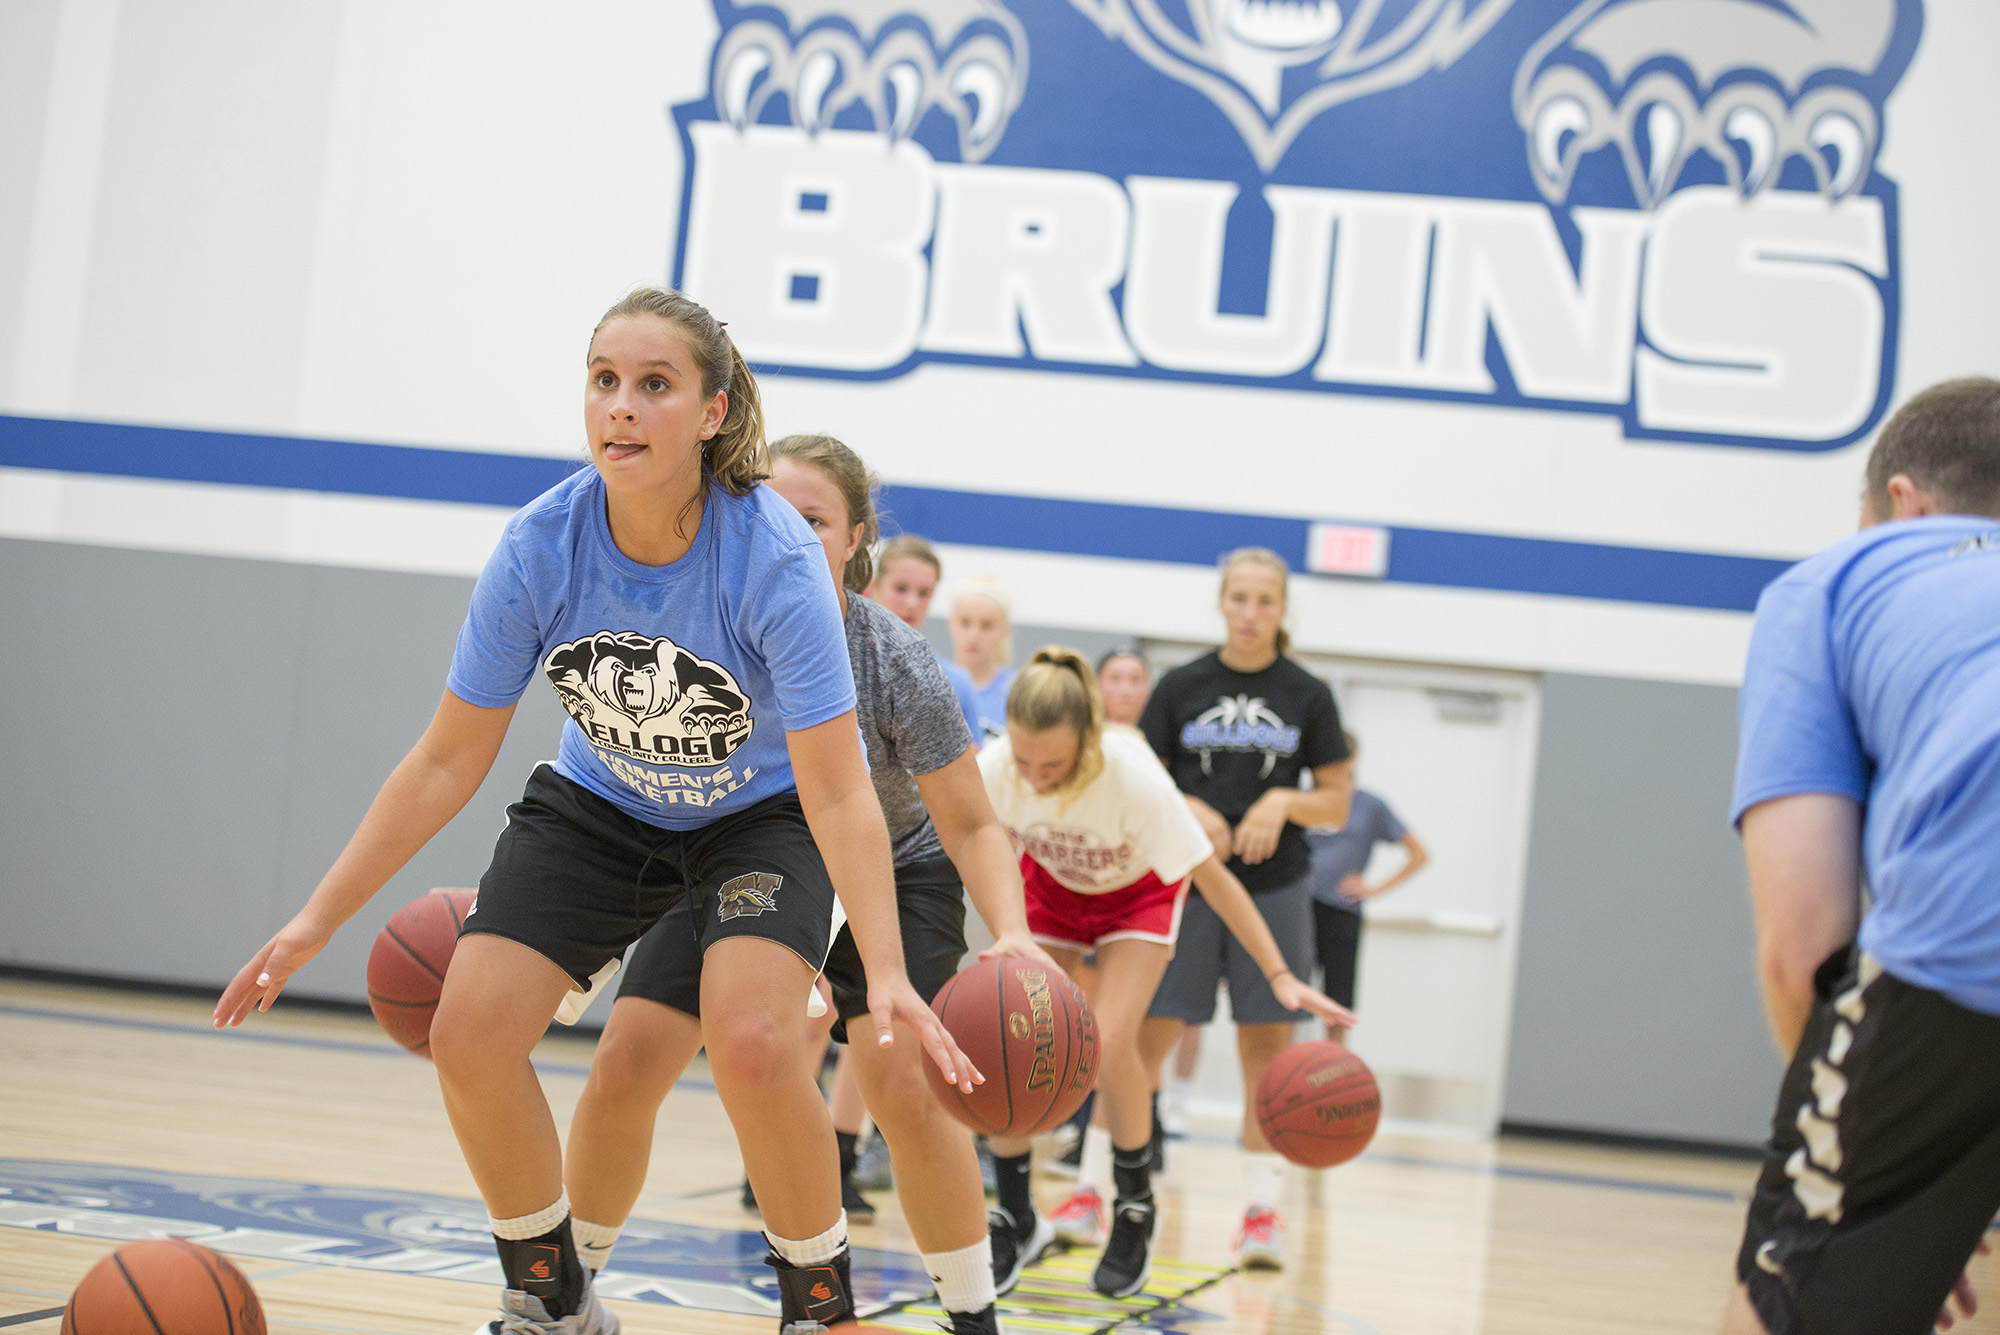 Participants in KCC's Girls' Basketball Camp work on drills in the Miller Gym.